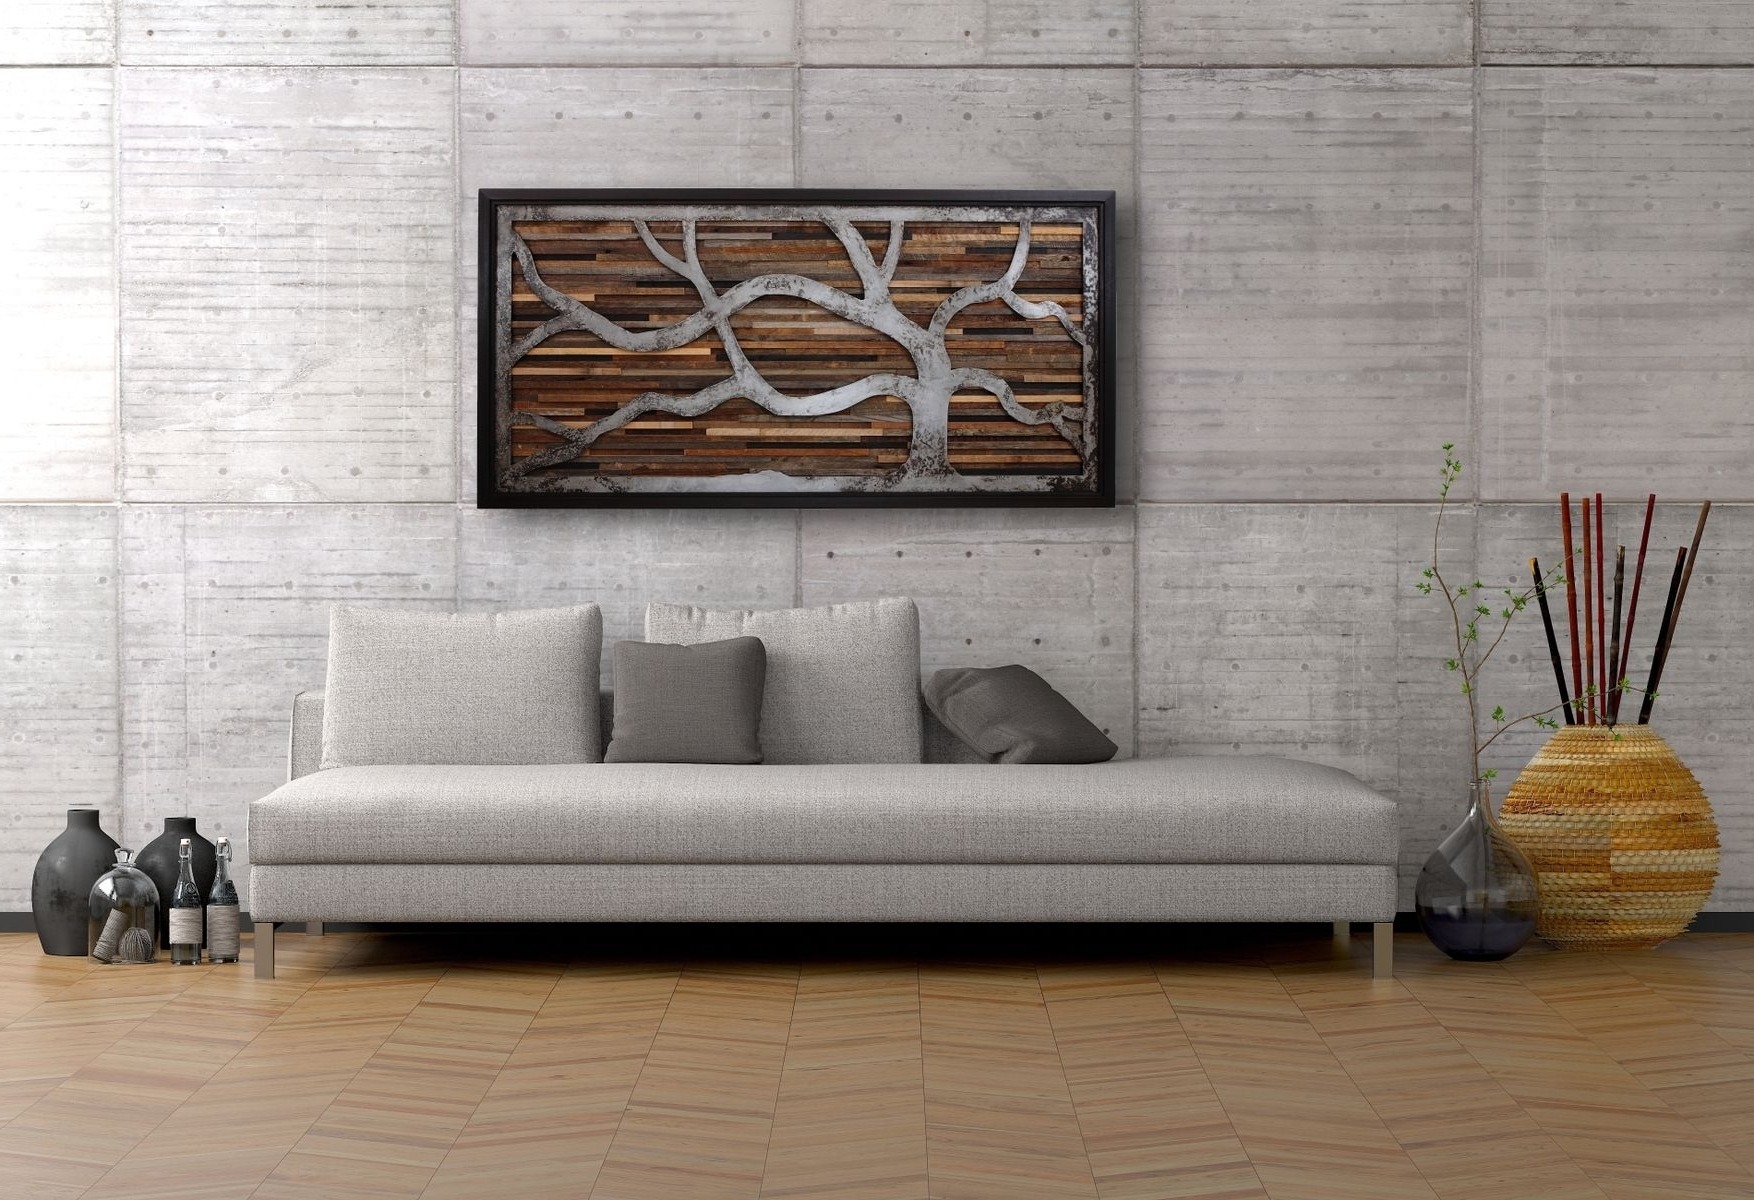 Wood Art Wall Within Recent Handmade Reclaimed Wood Wall Art Made Of Old Barnwood And Rustic (View 10 of 20)